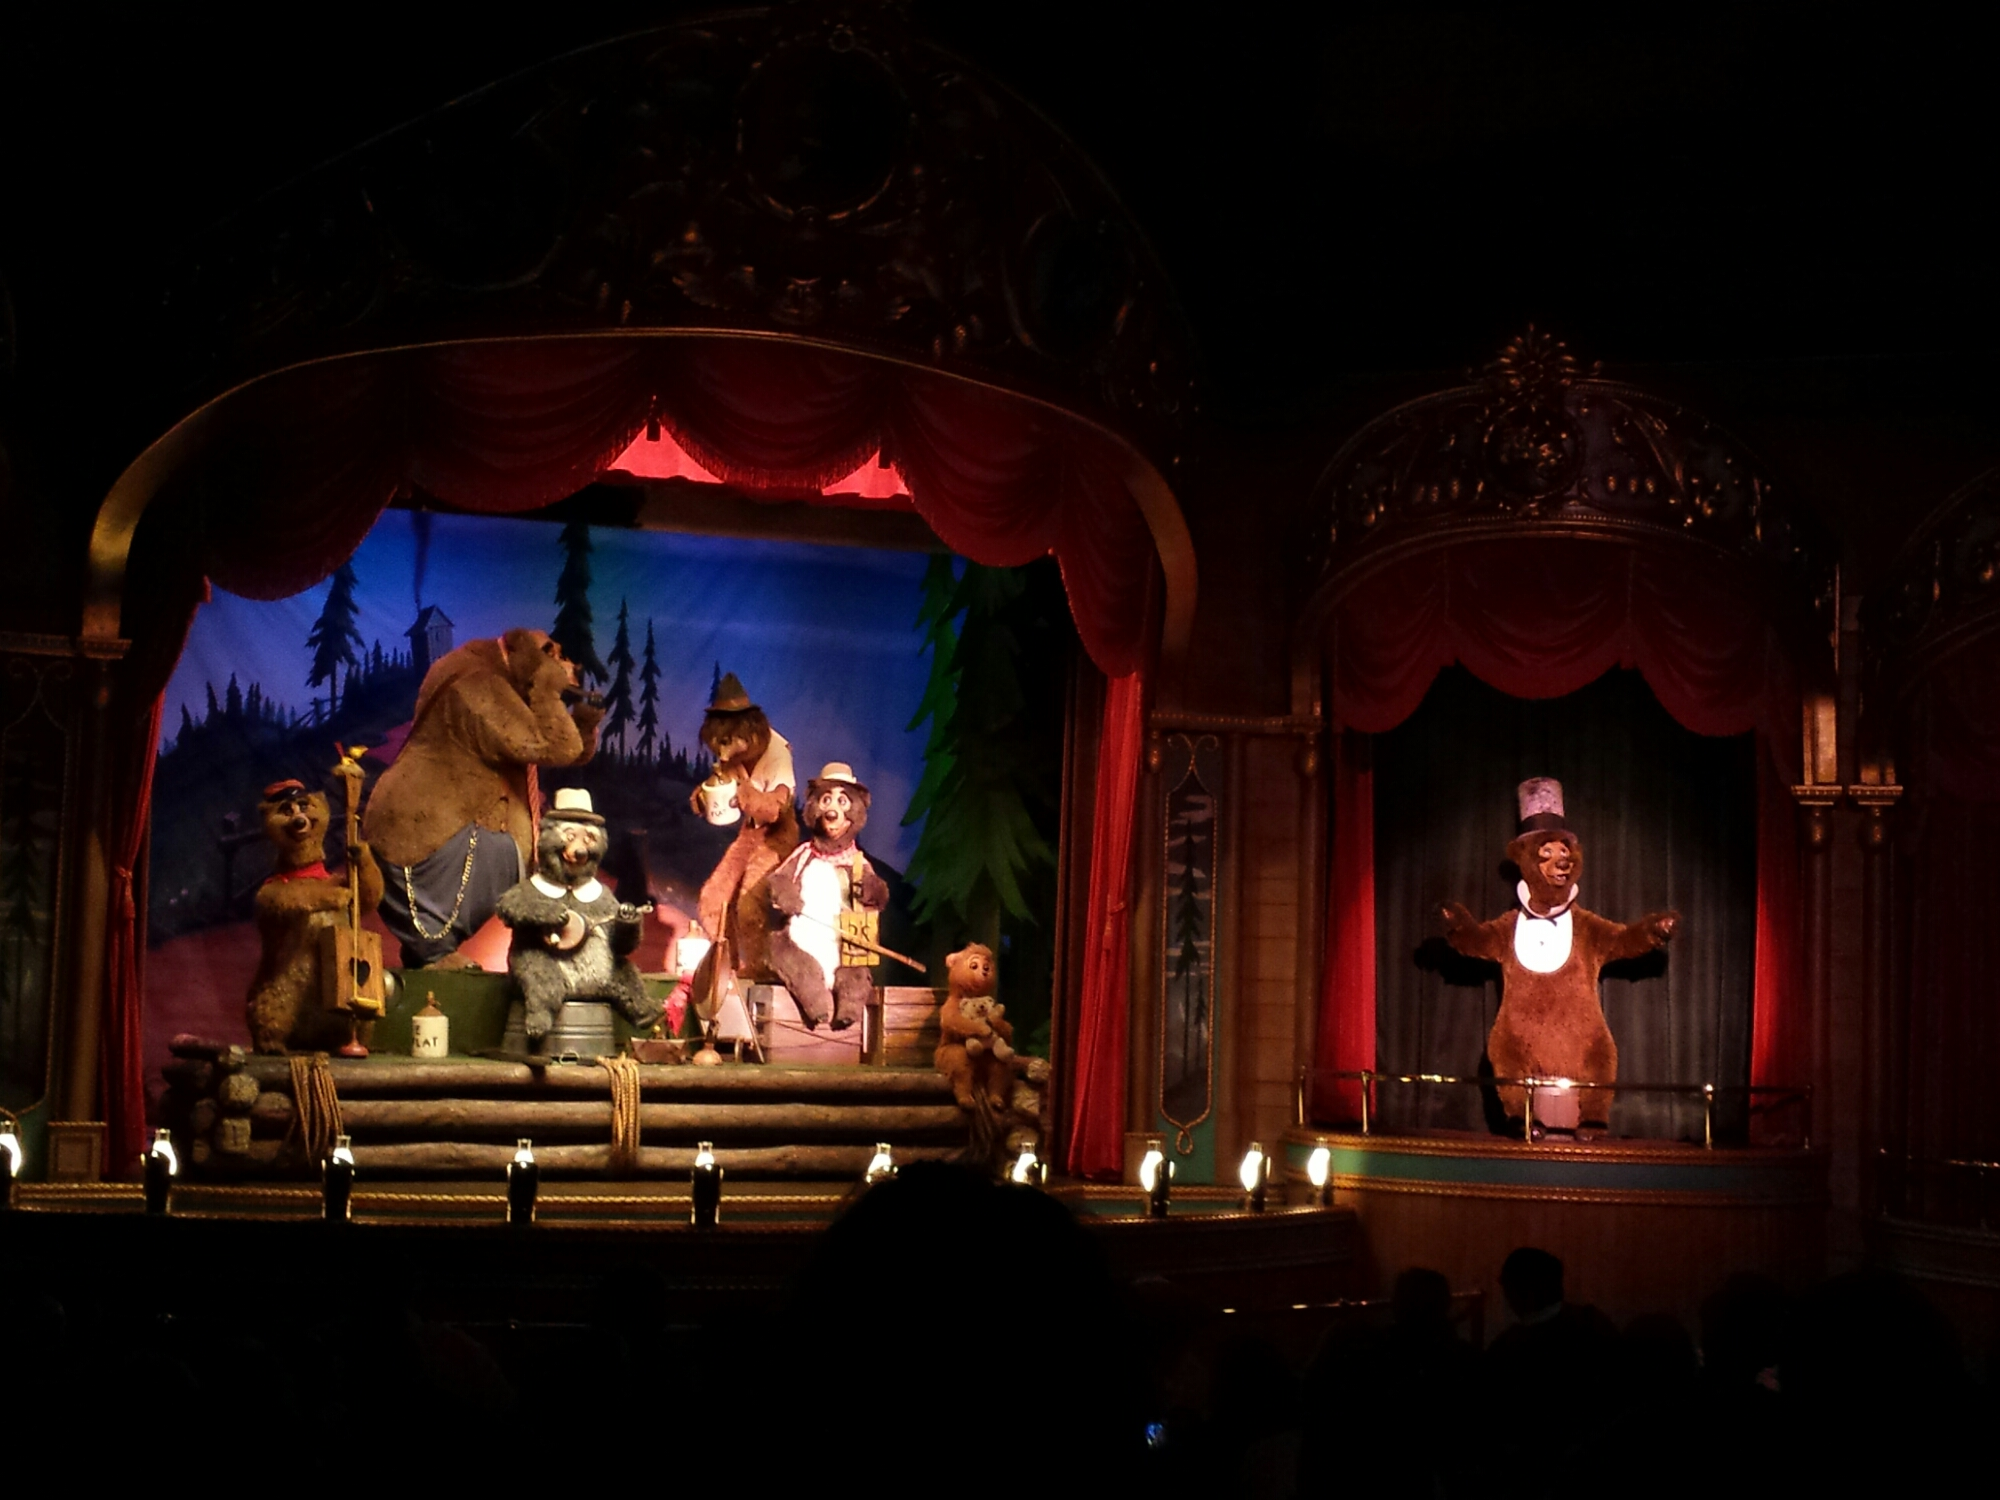 Spending some time with the Country Bears #WDW Magic Kingdom